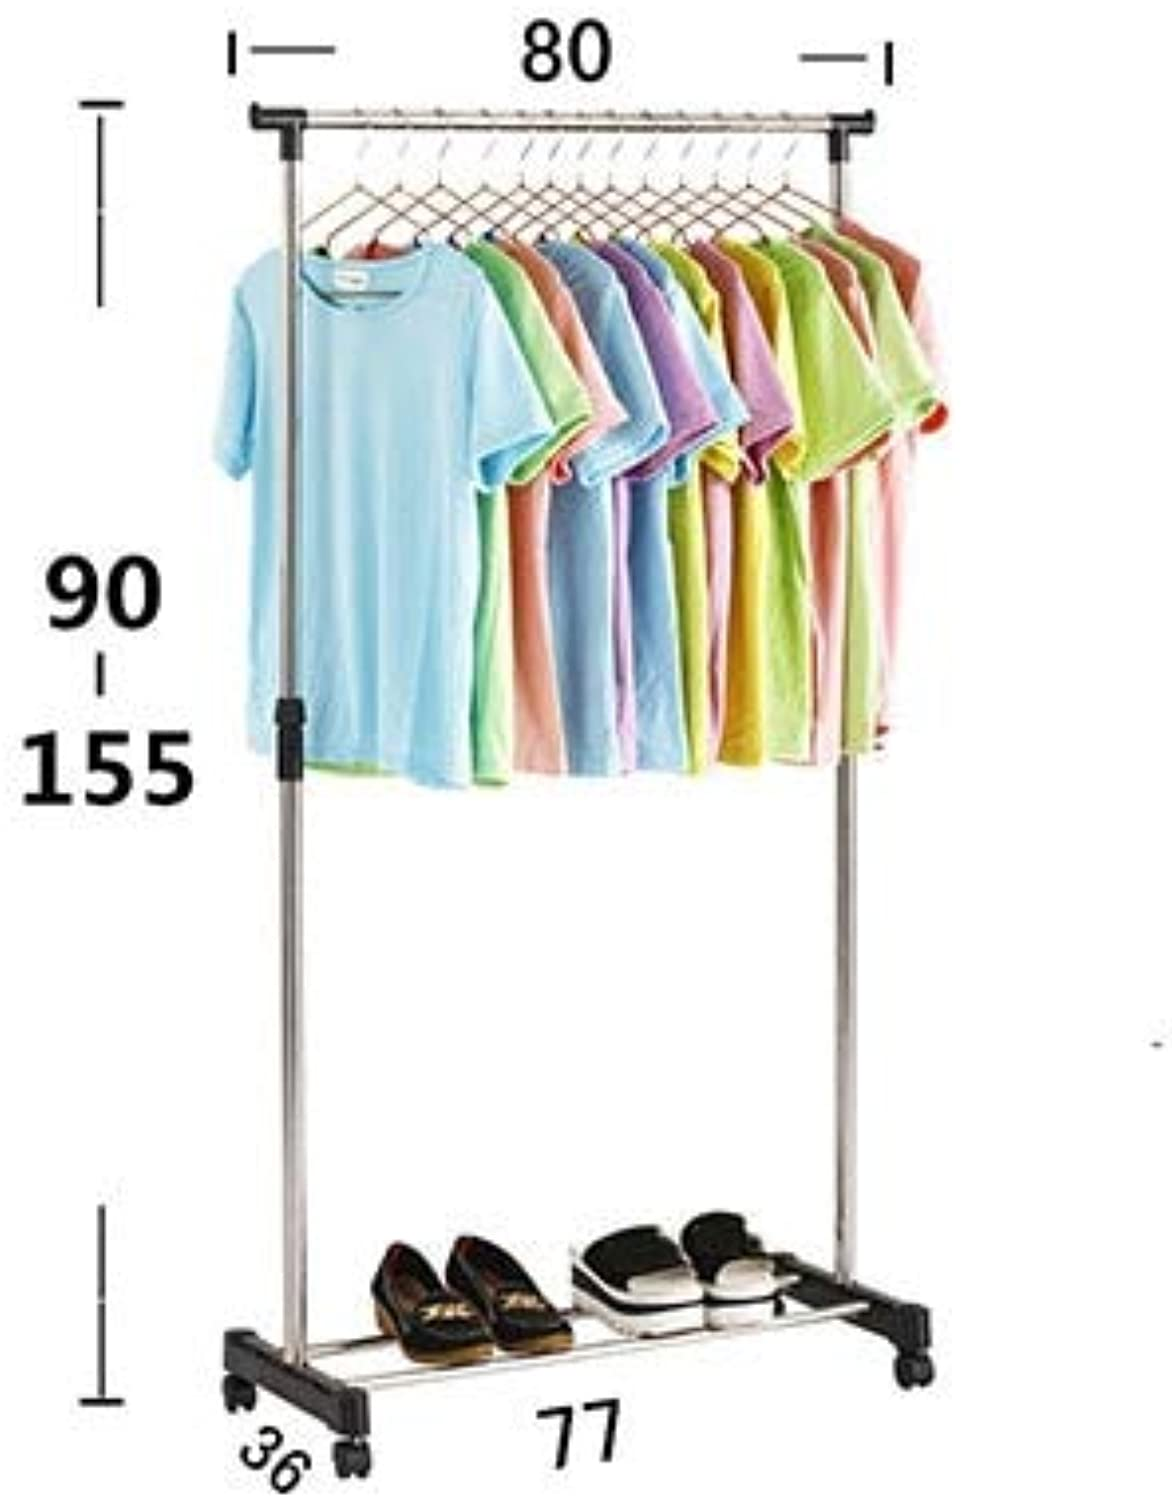 NhaxElite Coat Rack Stand Simple Folding Clothes Hanger Movable Assembled Coat Rack Stand Adjustable Clothing Closet Bedroom Living Room Furniture 145x80x77cm